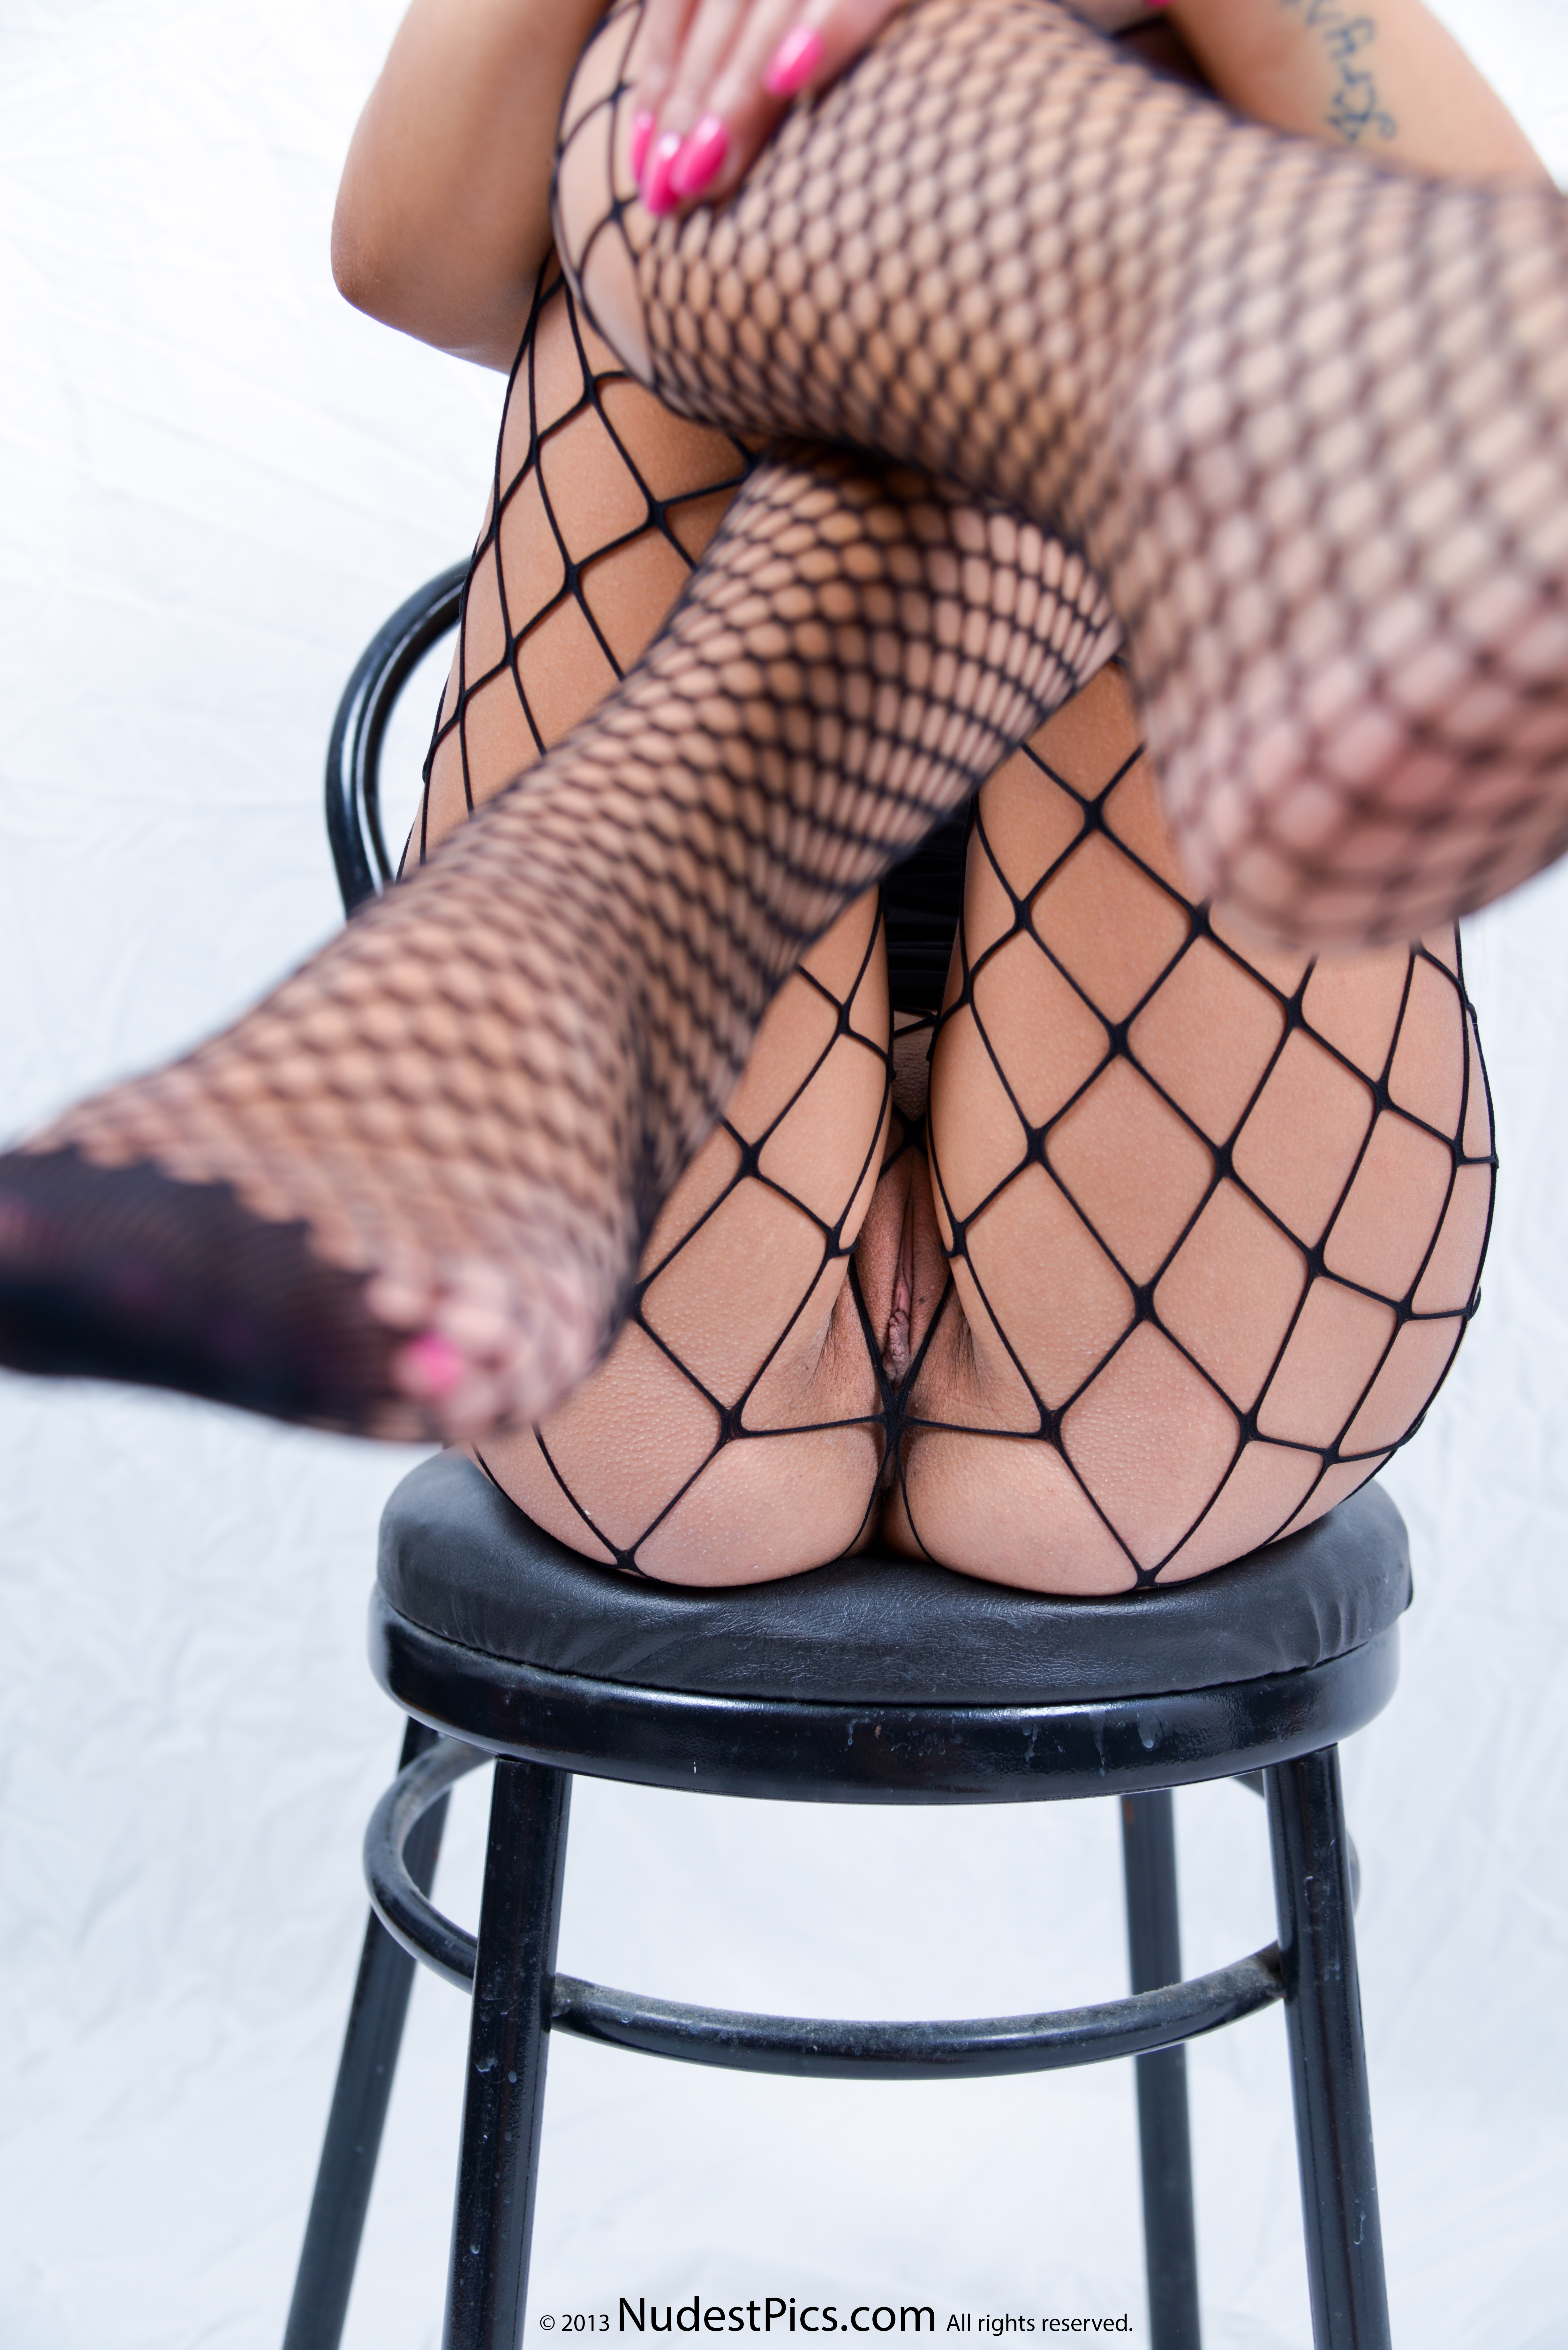 Pussy in Sexy Fishnets Crossing Legs Up on Chair